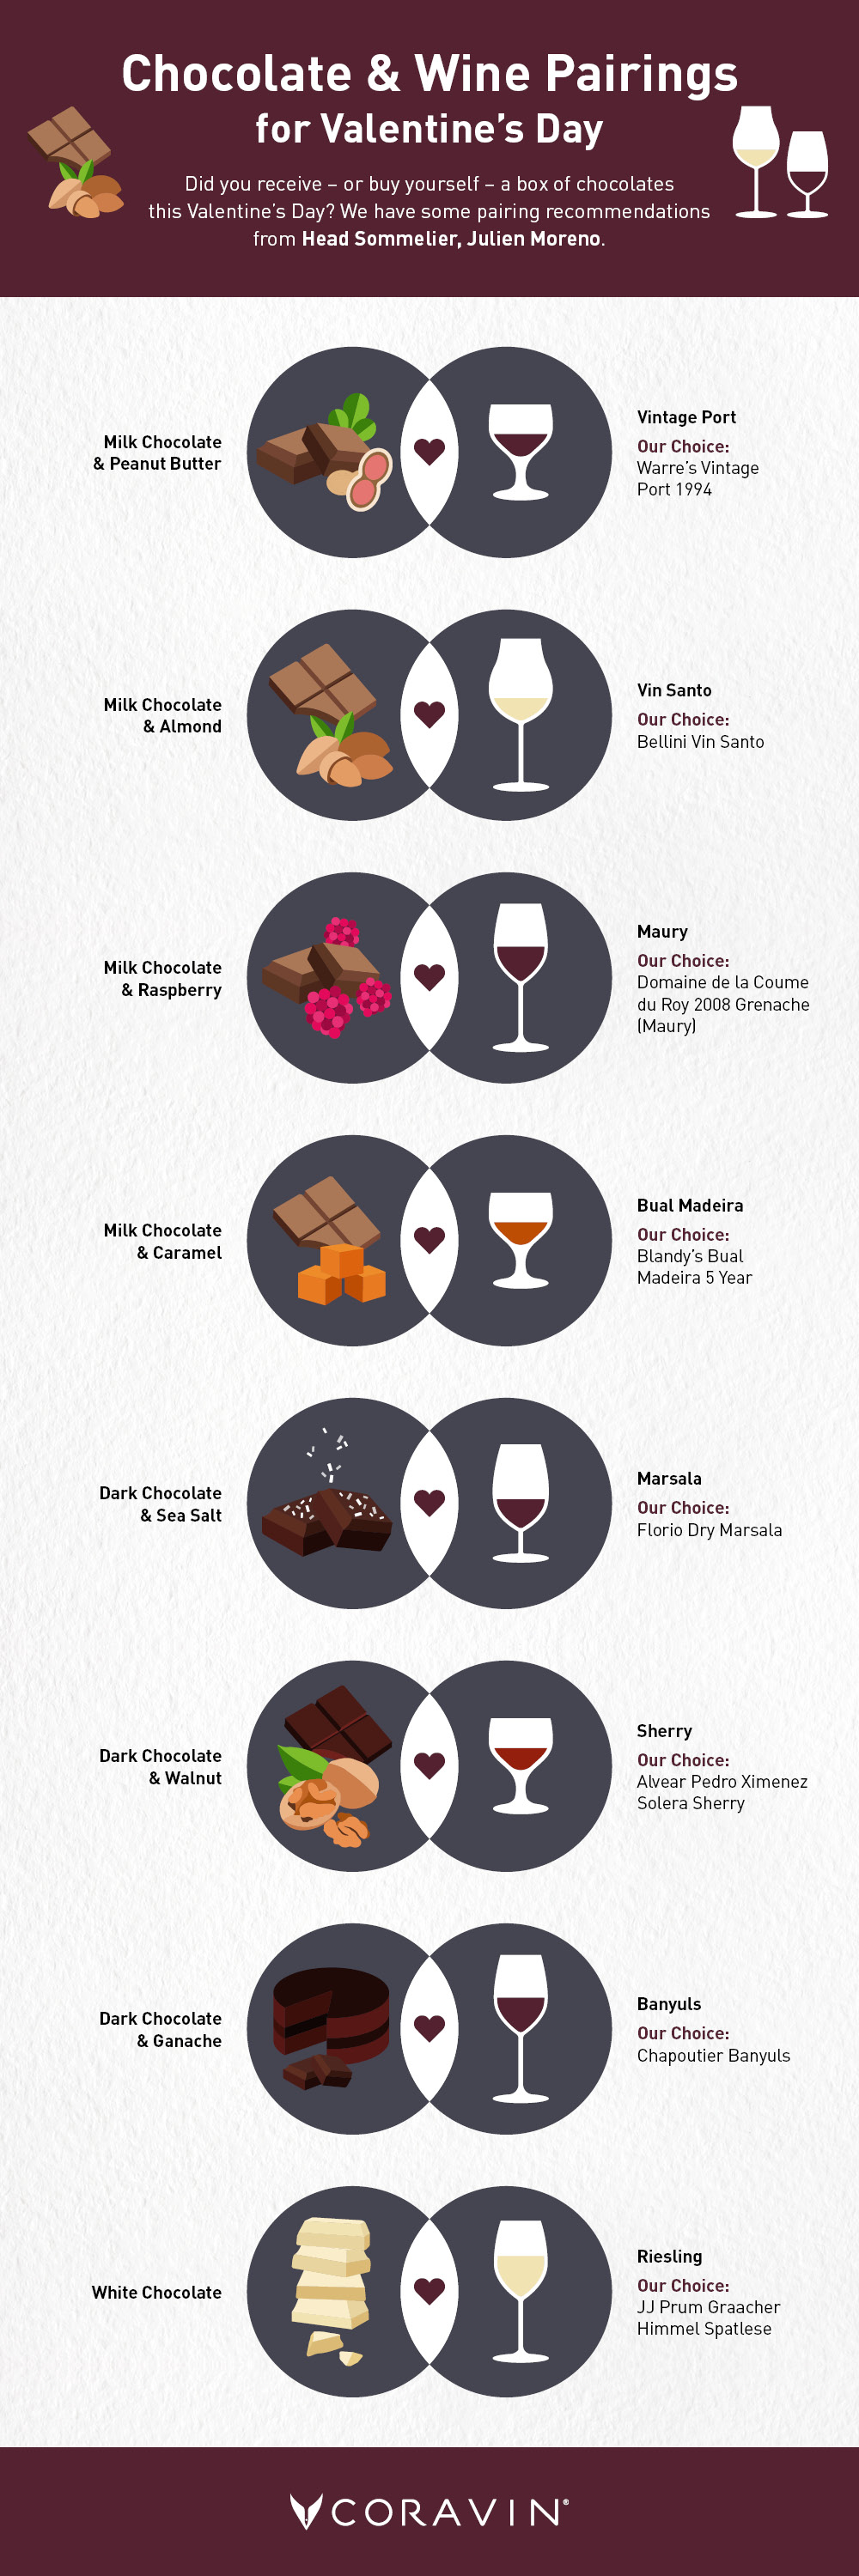 chocolate wine pairing